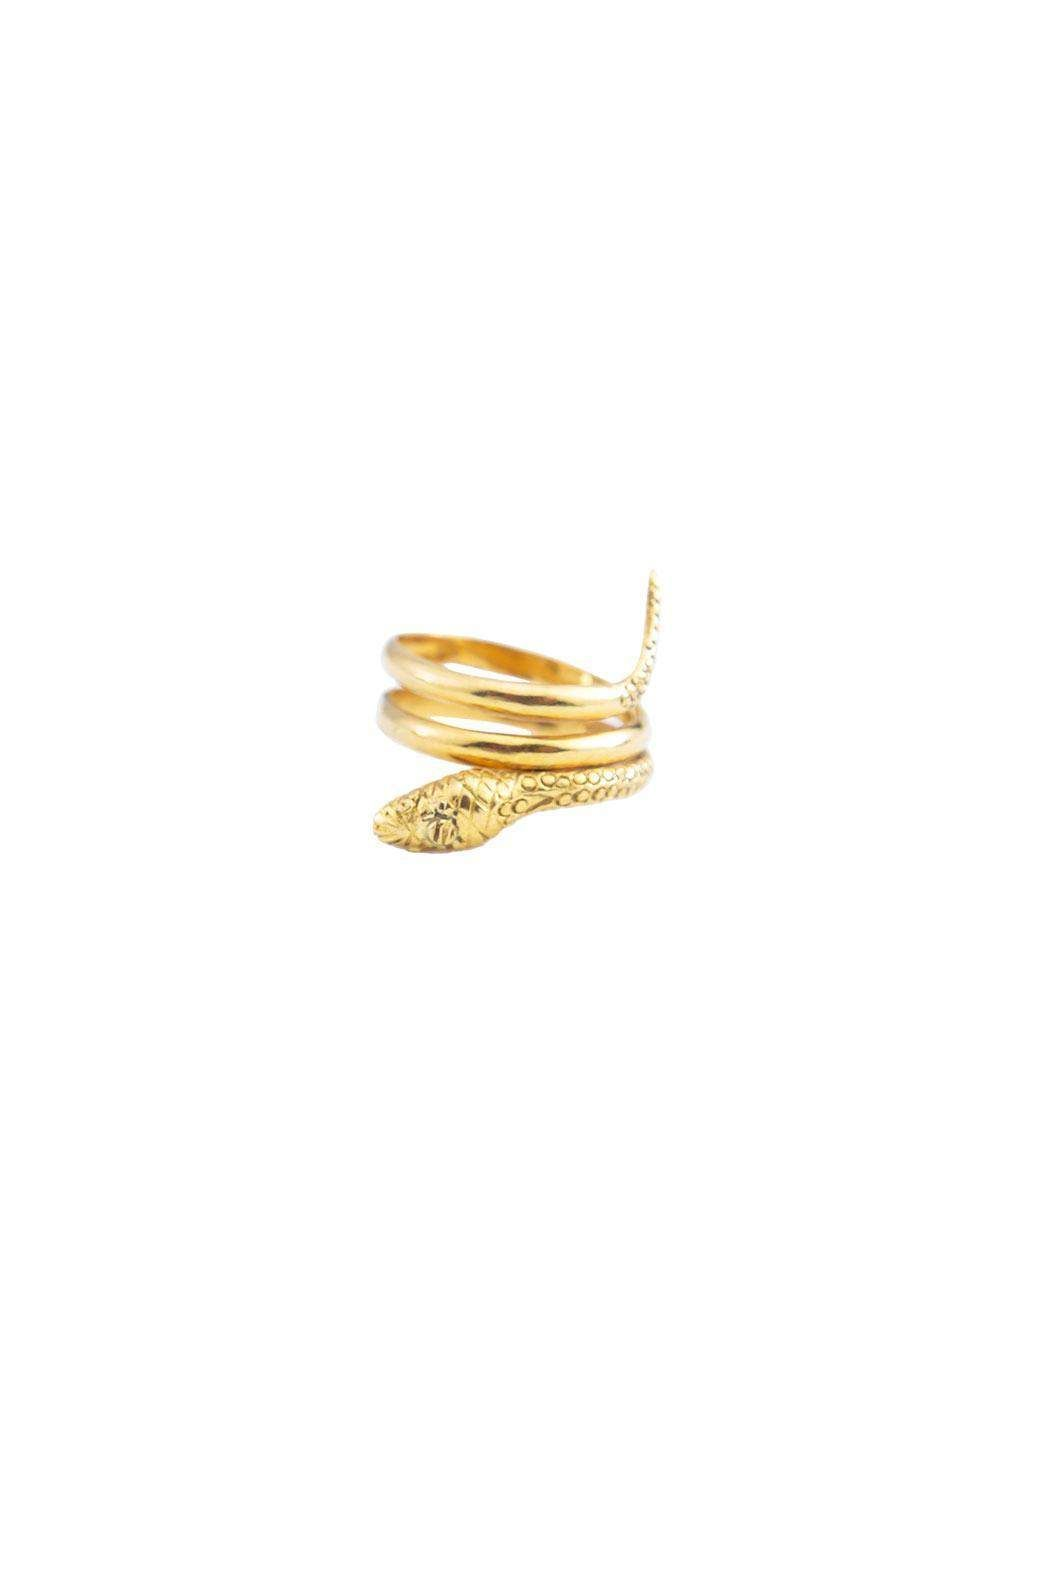 """Unusual yet simple in design this coiled snake elegantly wraps around the finger. In many cultures the snake is a symbol of wisdom, transcendence, healing and rejuvenation. 14 karat gold, inside stamp """"Made in Greece.""""  Gold Snake Ring by Luxe Boutiques. Accessories - Jewelry - Rings Accessories - Jewelry - Fine Jewelry Back Bay, Boston, Massachusetts"""